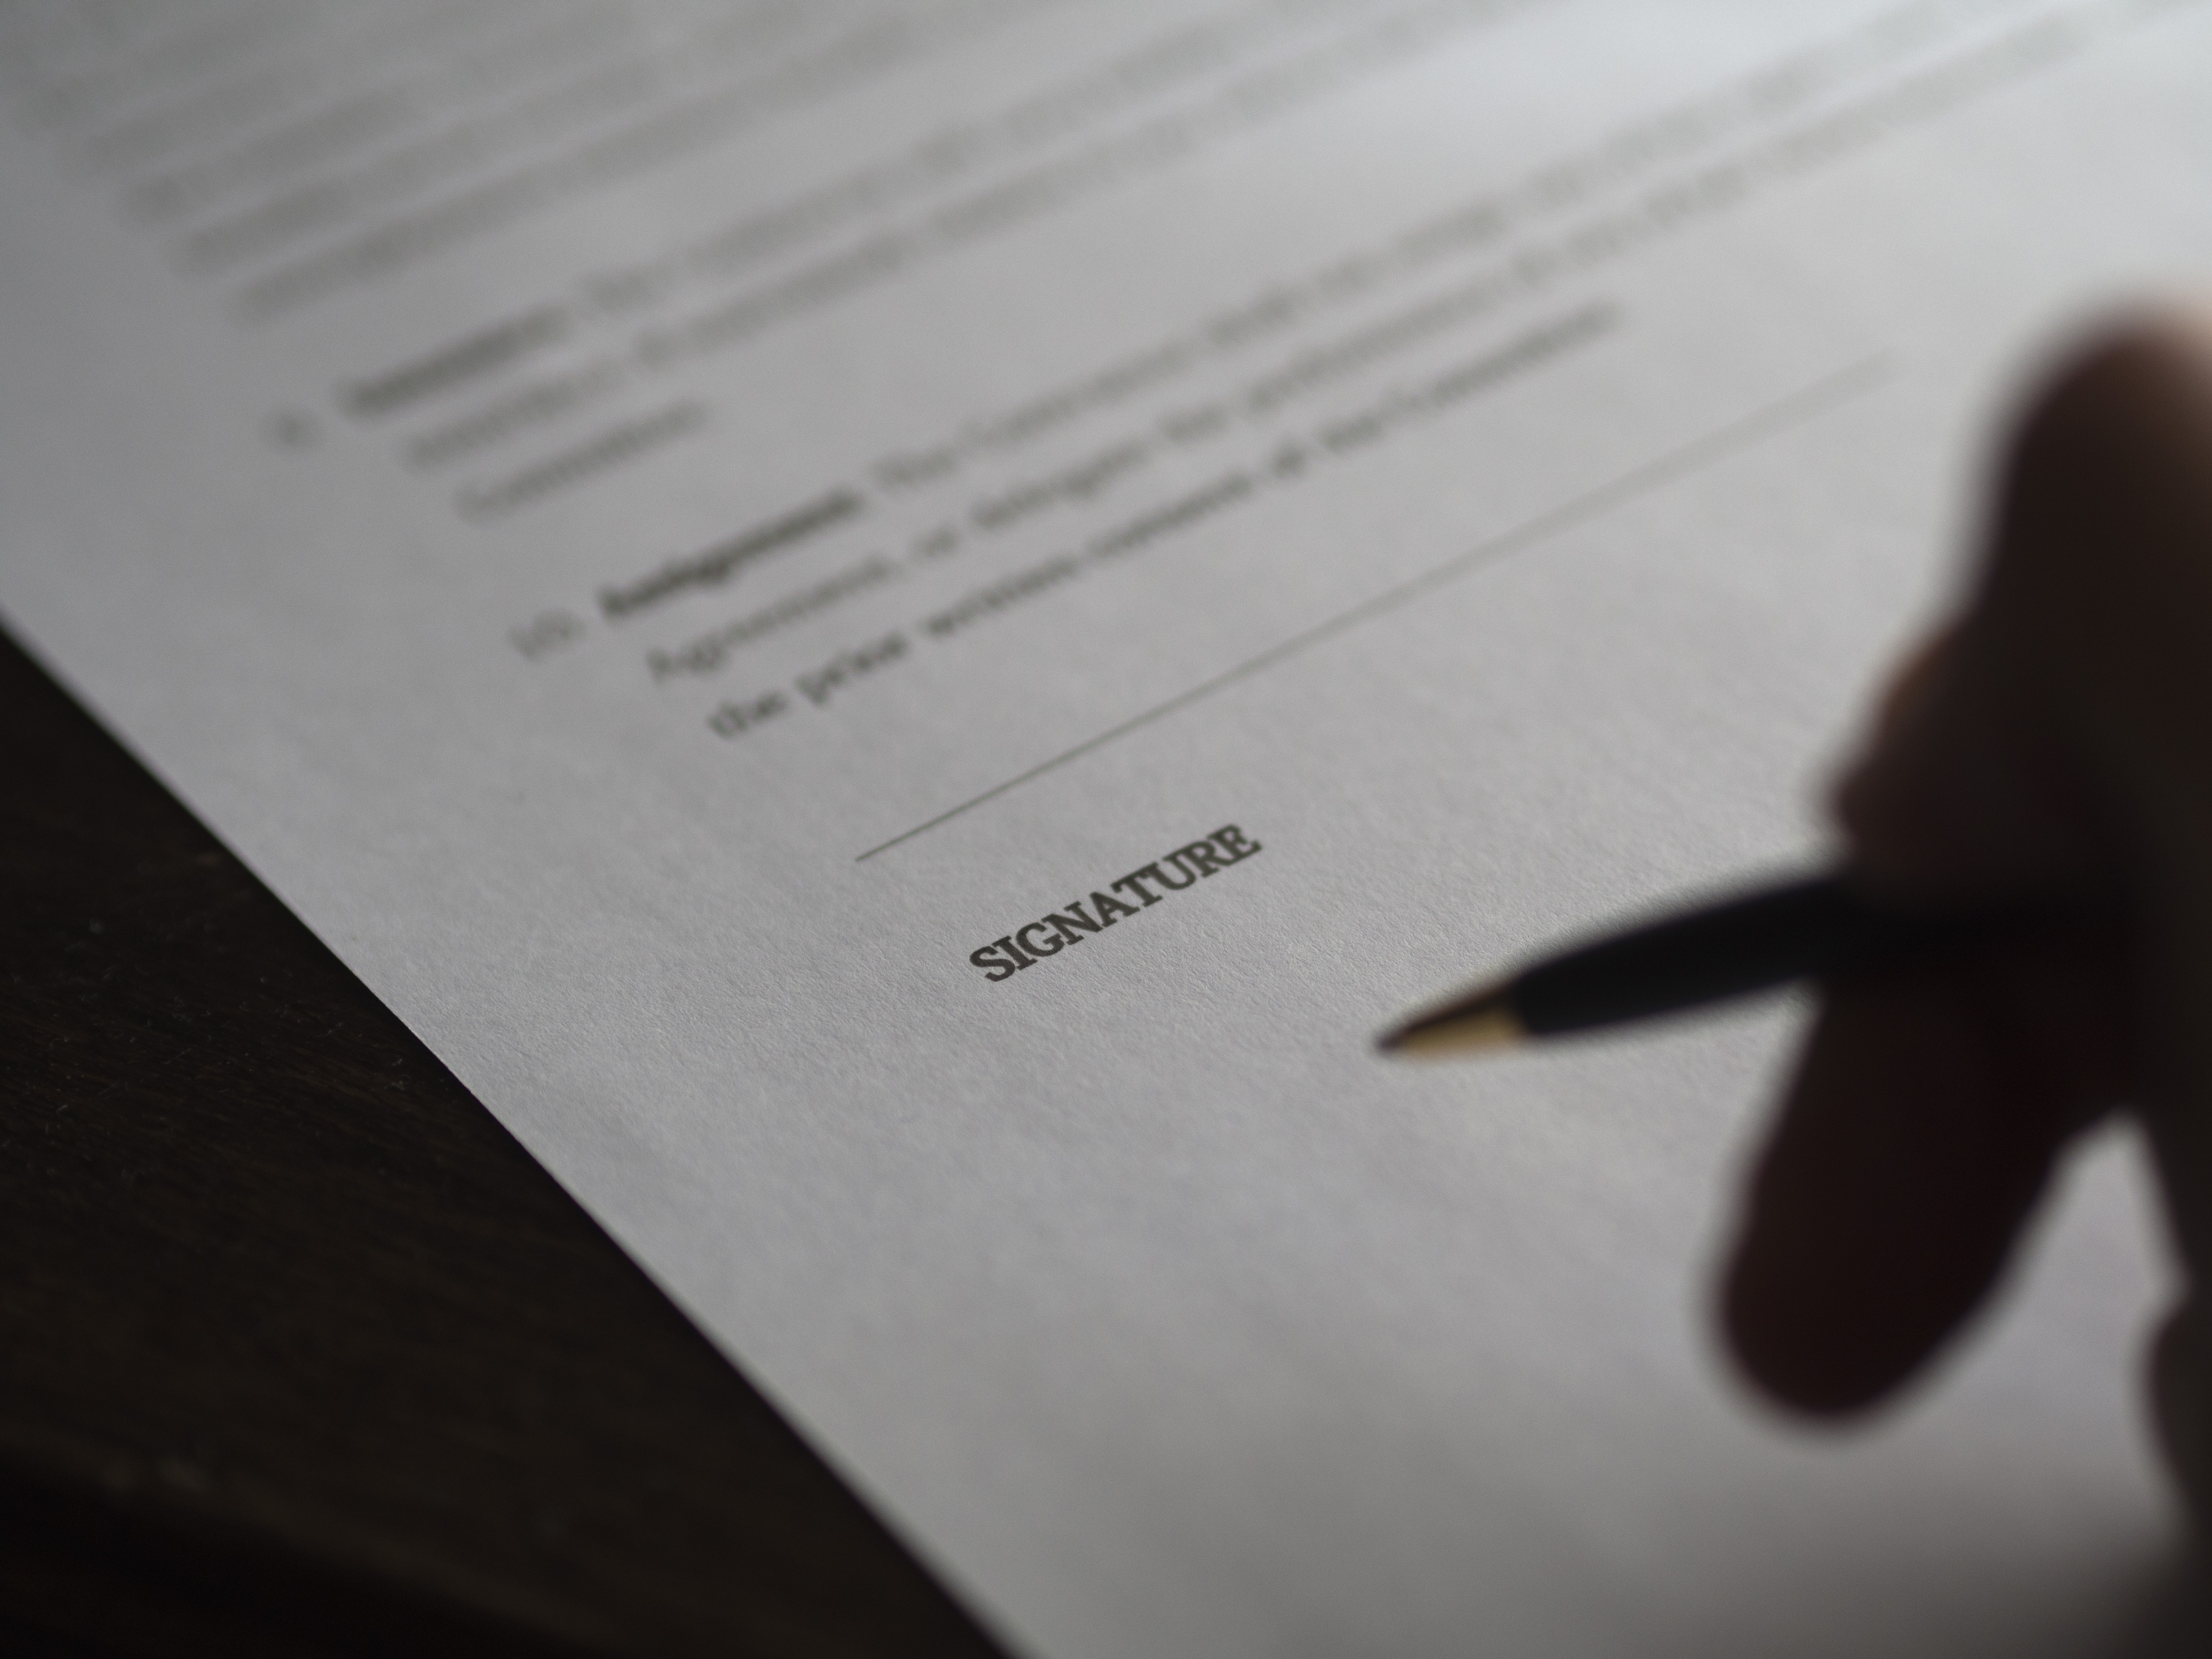 A person signing a document.